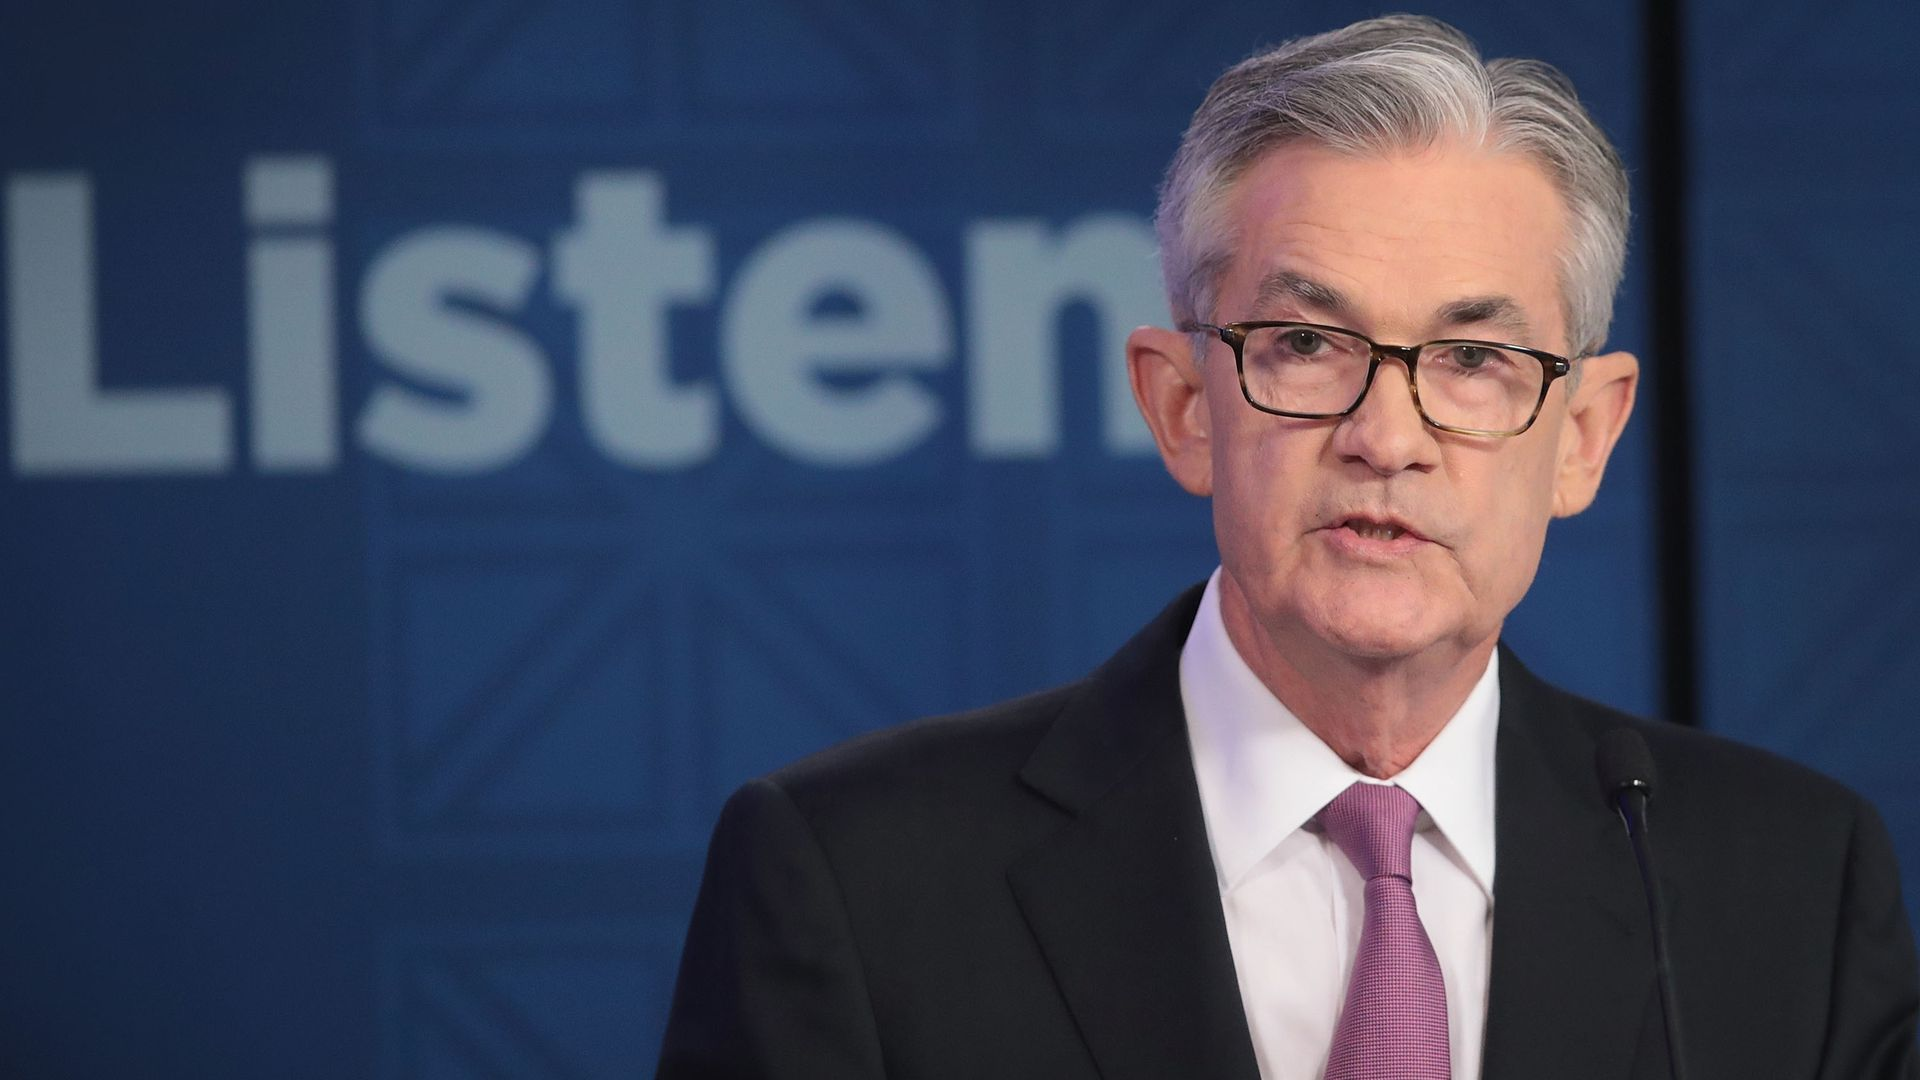 CHICAGO, ILLINOIS - JUNE 04: Jerome Powell, Chair, Board of Governors of the Federal Reserve speaks during a conference at the Federal Reserve Bank of Chicago on June 04, 2019 in Chicago, Illinois